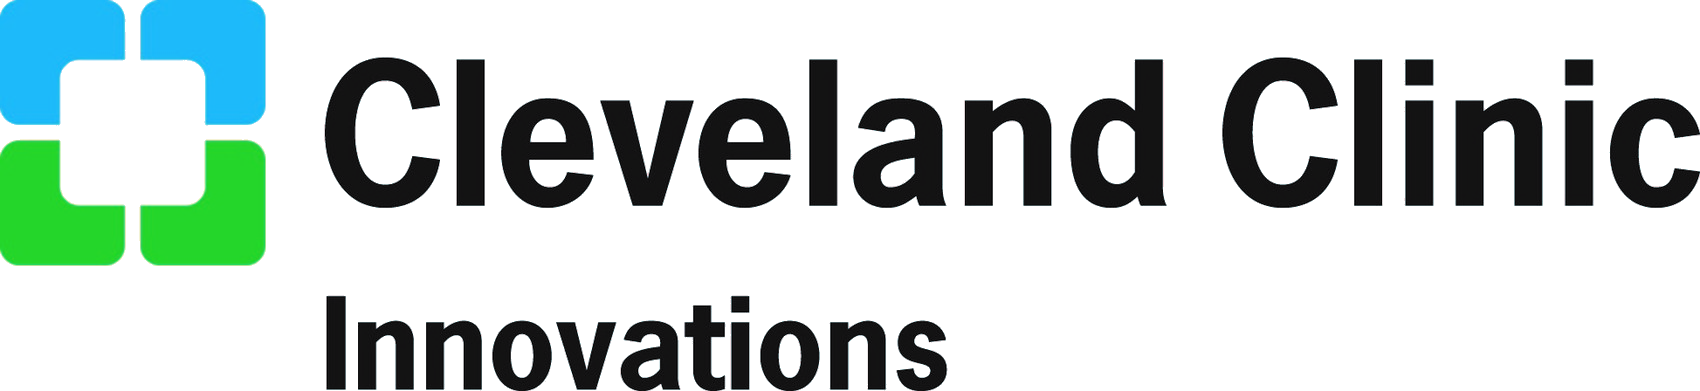 Cleveland-Clinic-Innovations-transparent